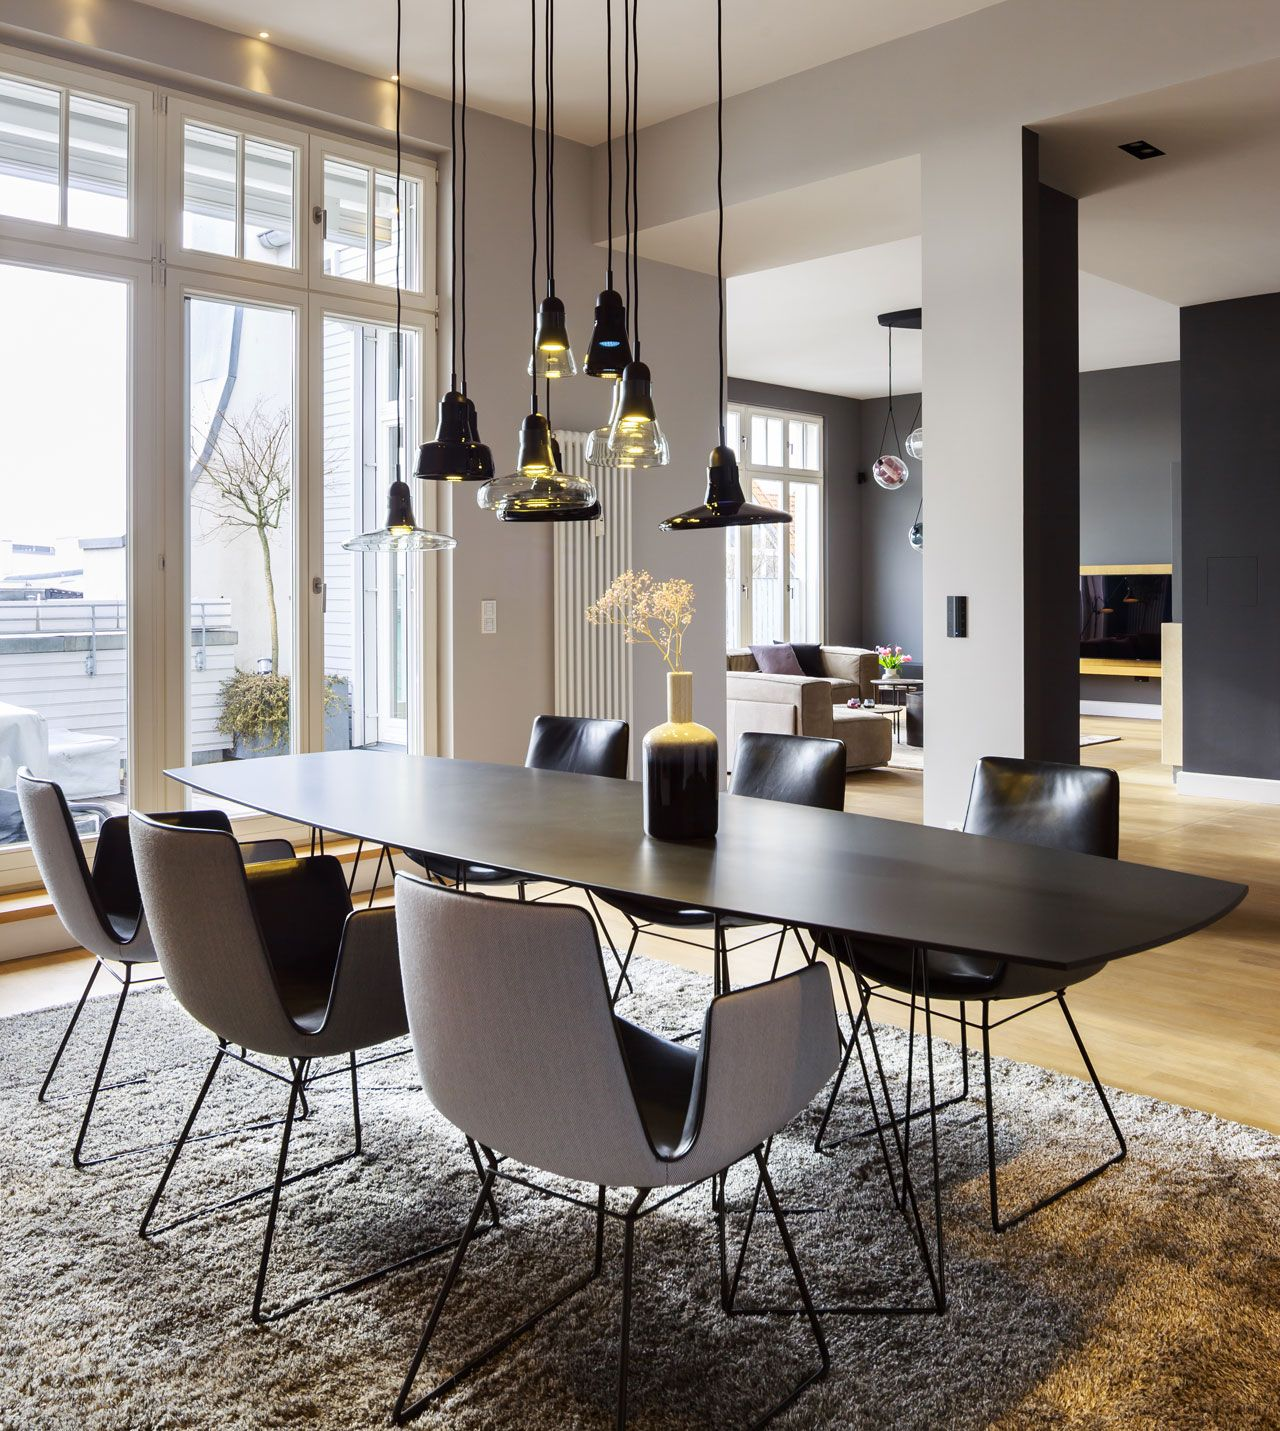 Joco table by Eoos for Walter Knoll and Amelie chairs by Freyfrau upholstered in leather